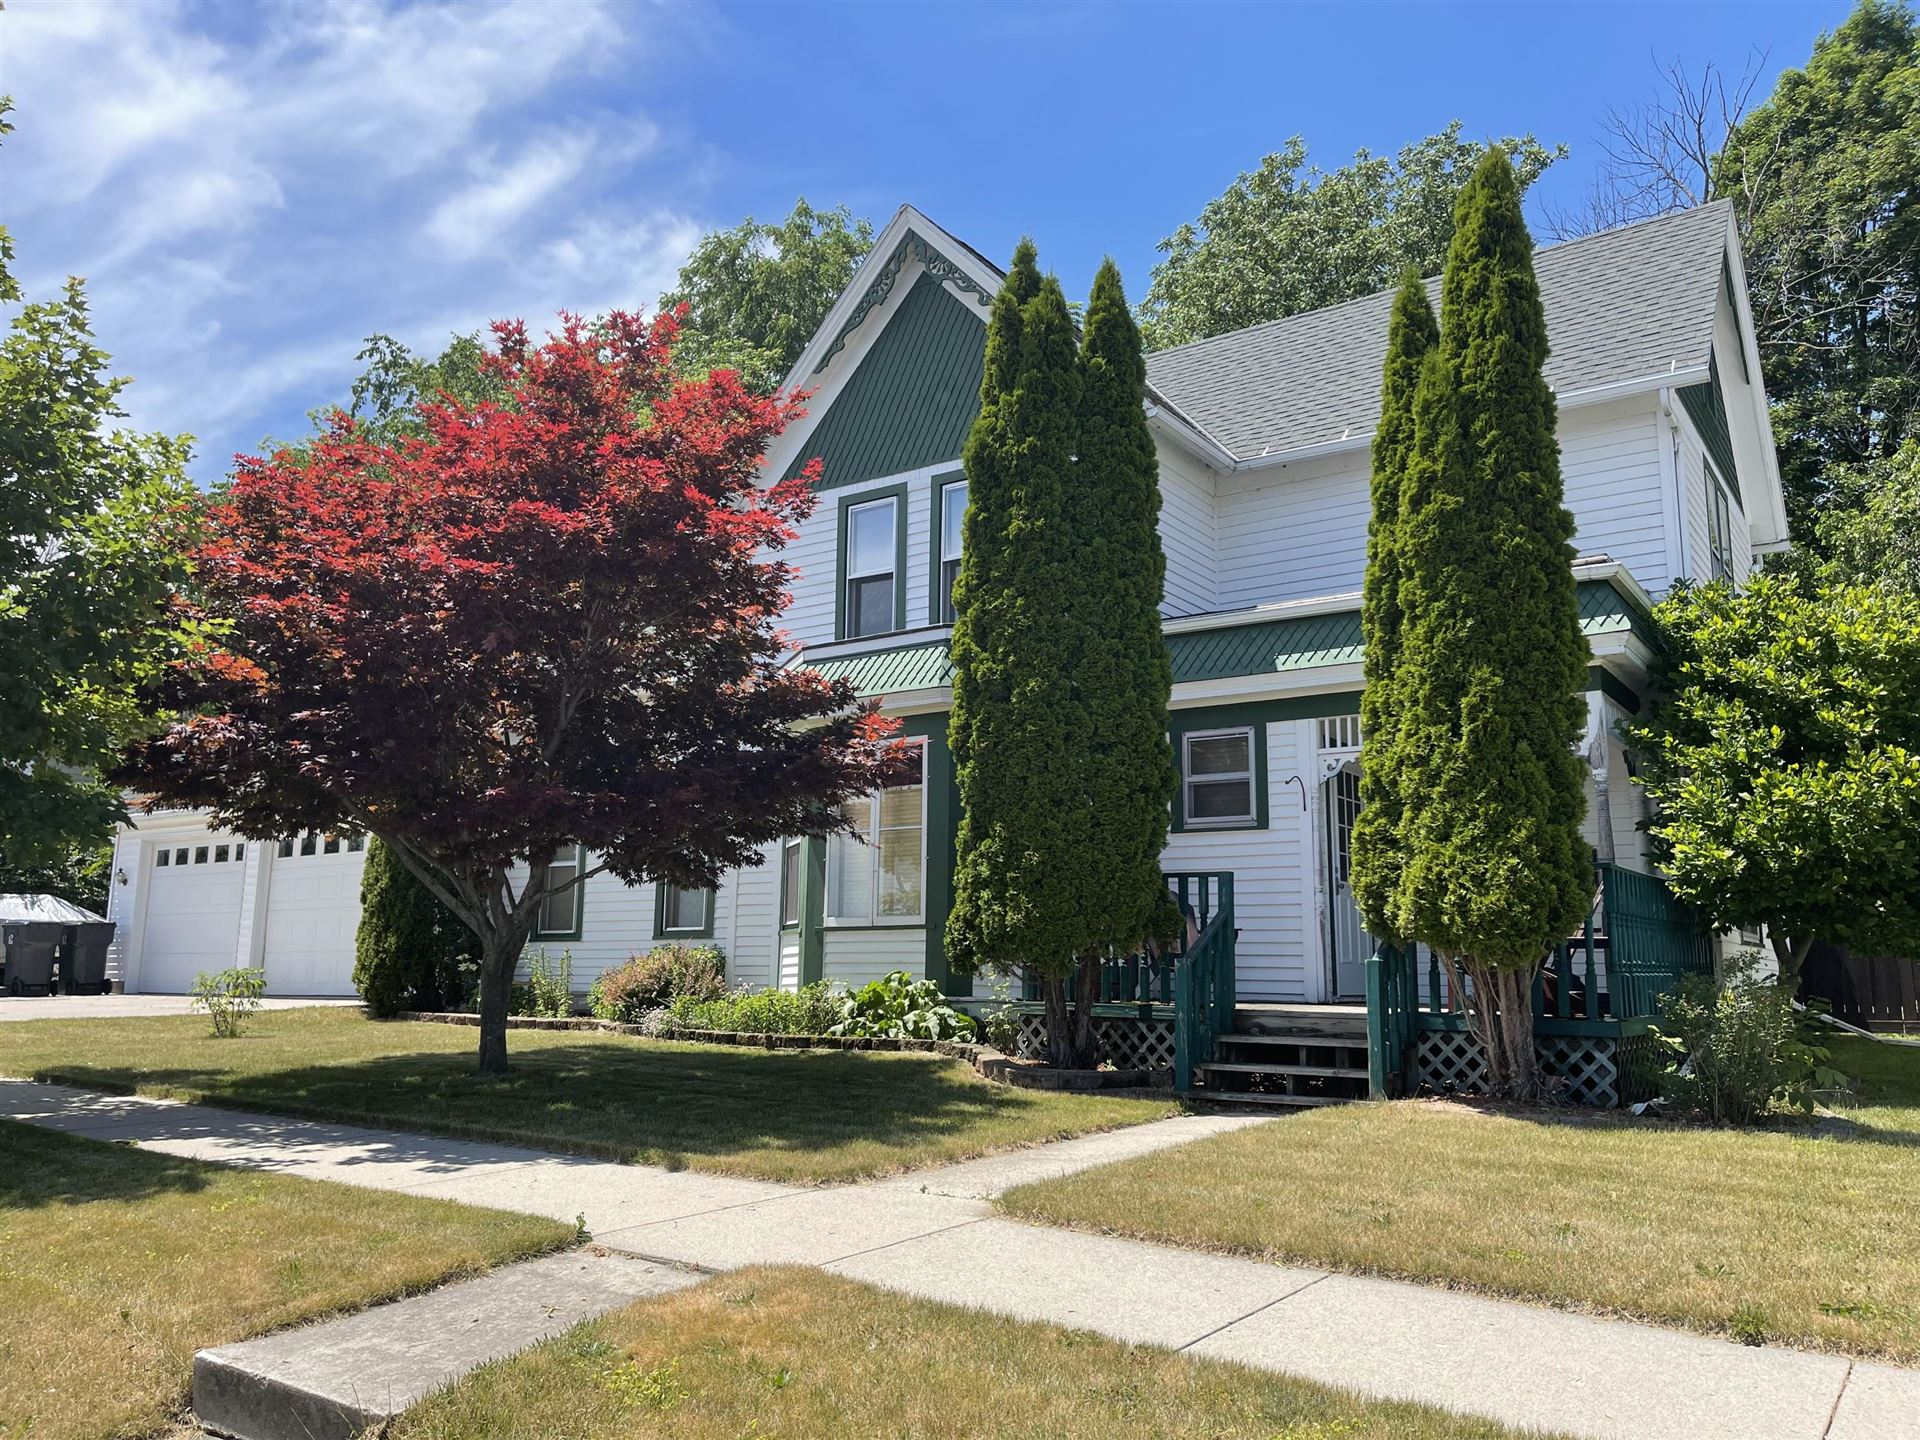 20 Plymouth St, Plymouth, WI 53073 - MLS#: 1747342